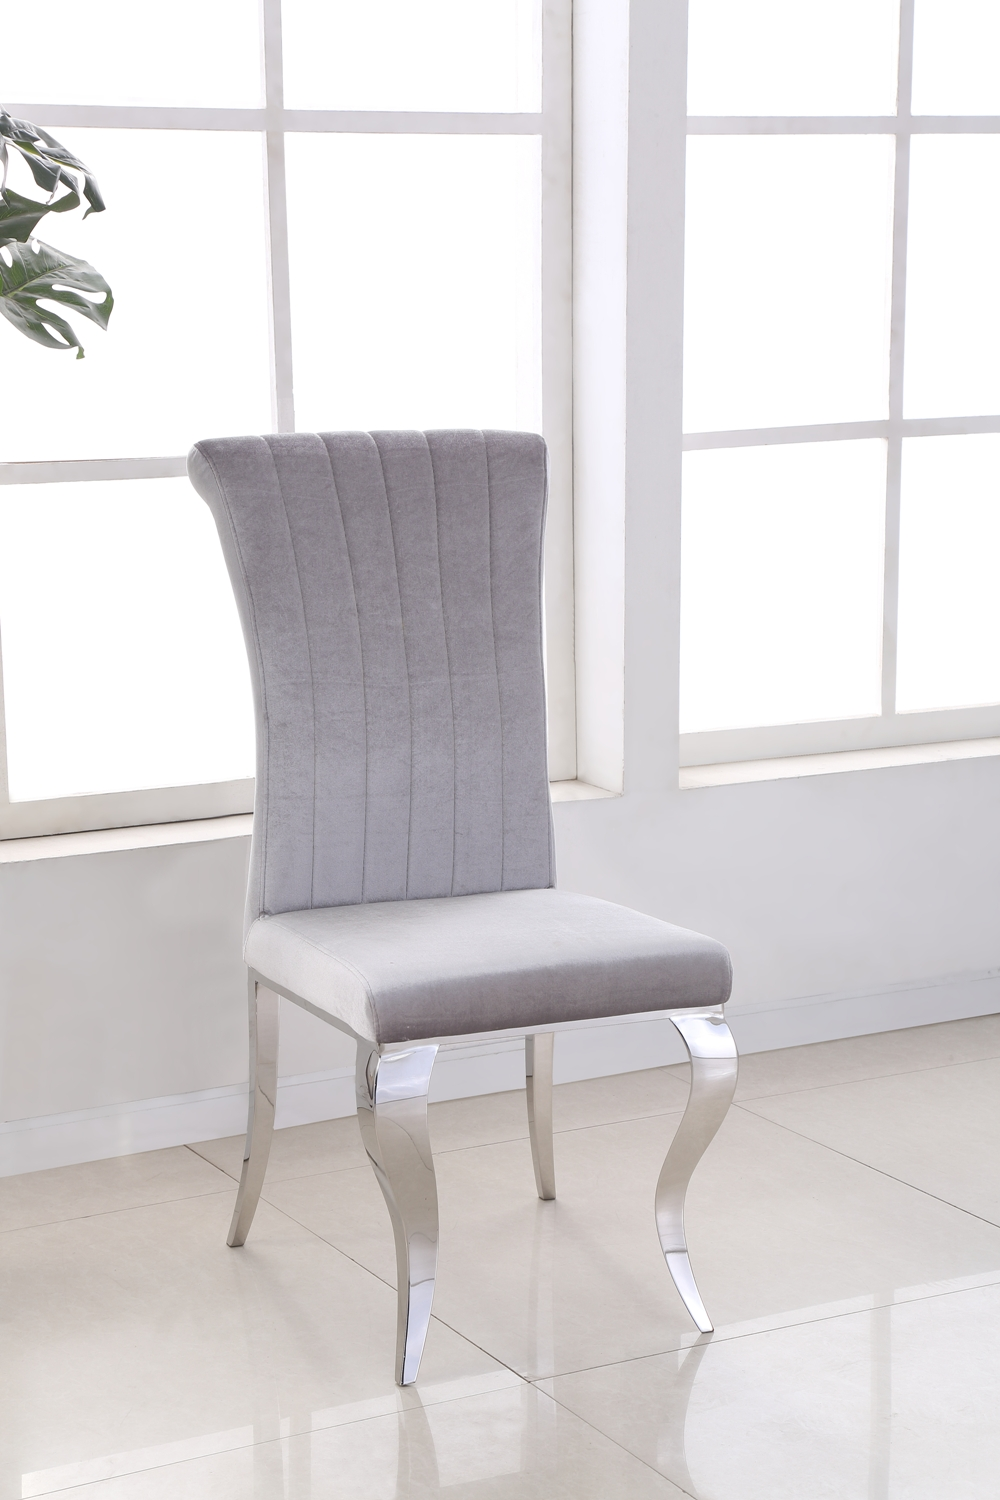 Liyana Grey Chair CH-891GR (front)